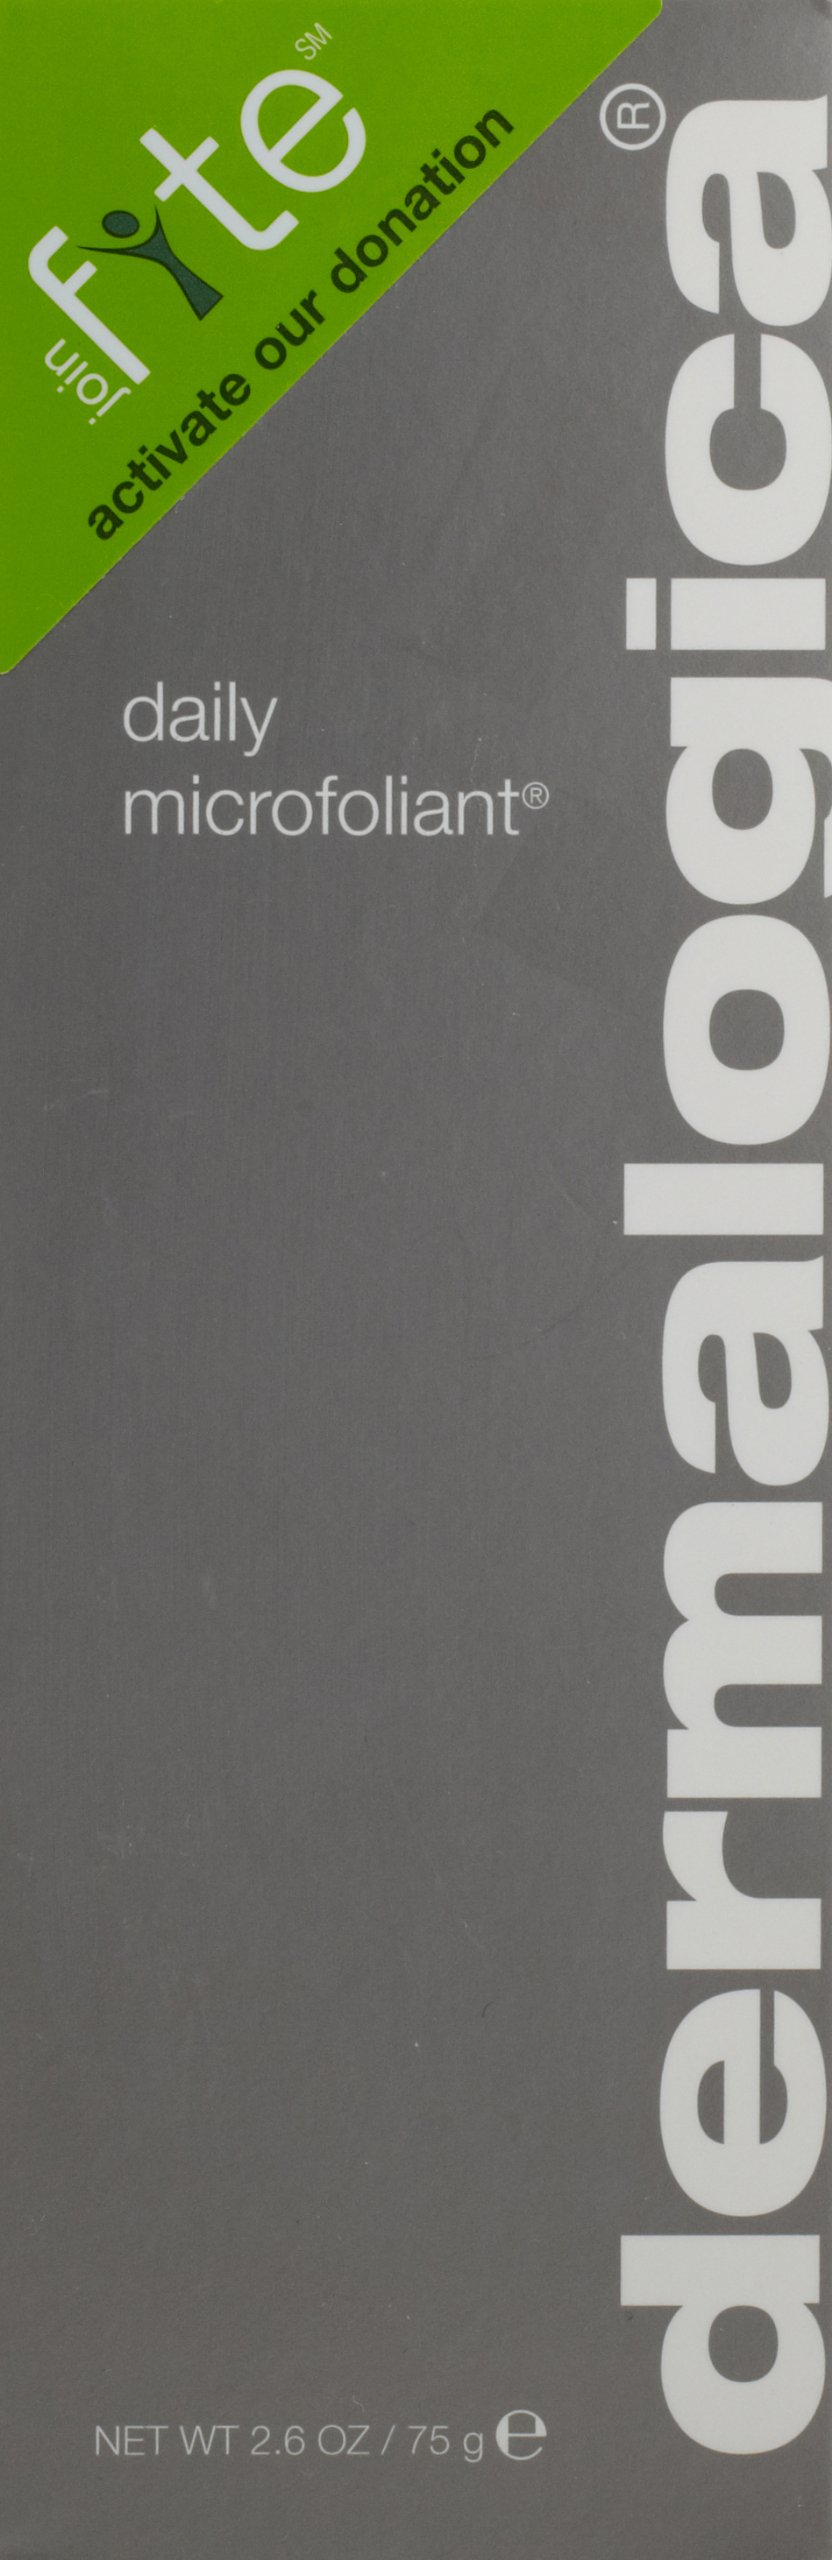 Dermalogica Daily Microfoliant, 2.6-Ounce by Dermalogica (Image #3)